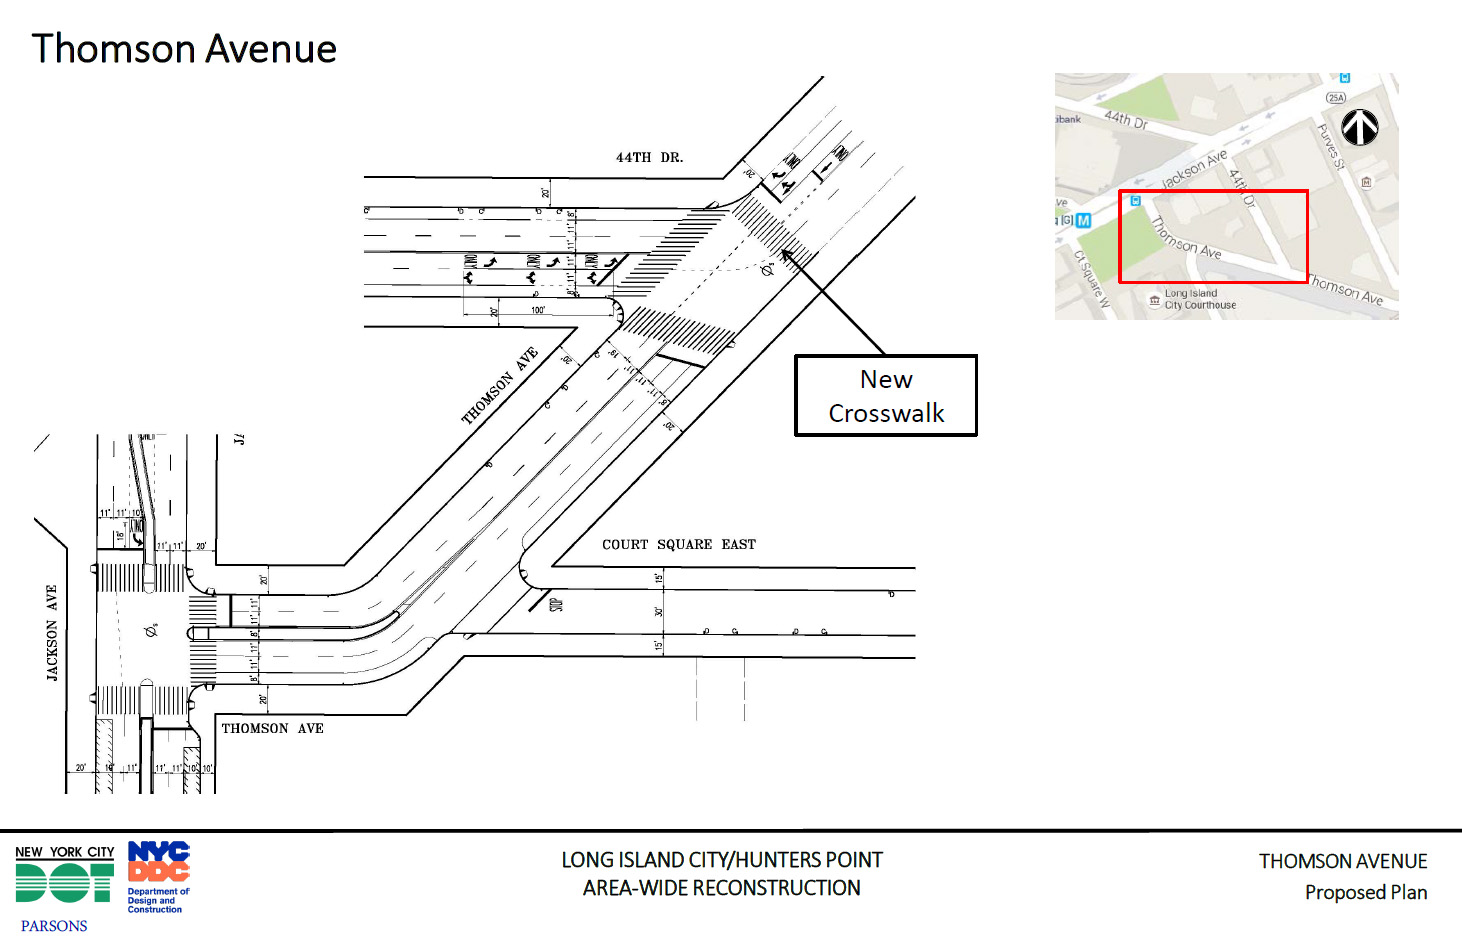 Street improvement at Thomson Ave and 44th Drive as proposed by the Department of Transportation. Source: NYCDOT, May 2016